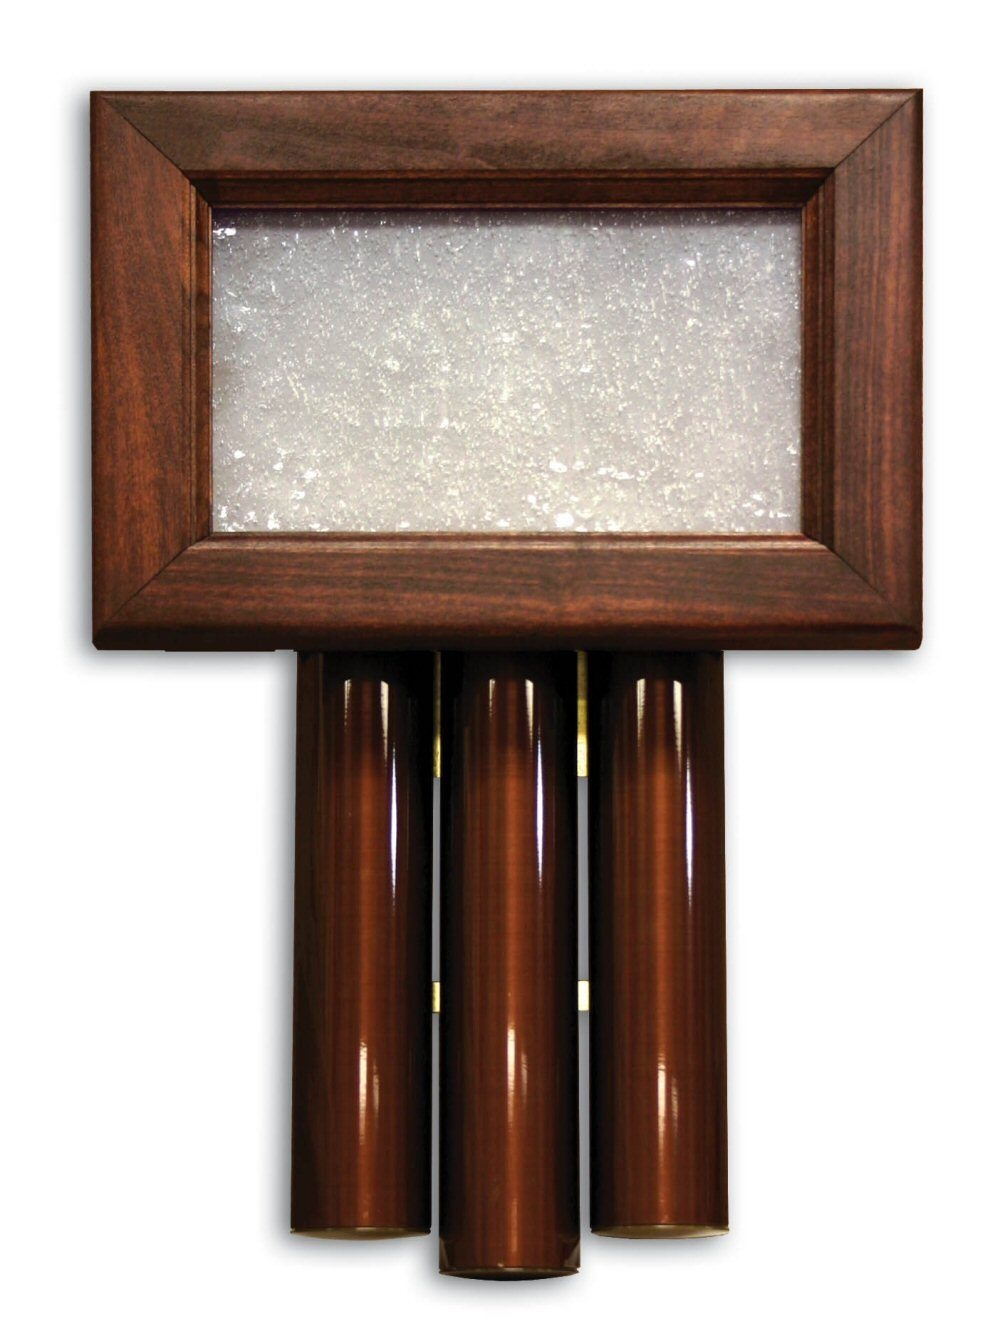 Heath Zenith 61 Wired Door Chime With Solid Beech Mahogany Finish Cover And  Oil Rubbed Bronze Tubes   Doorbell Chimes   Amazon.com